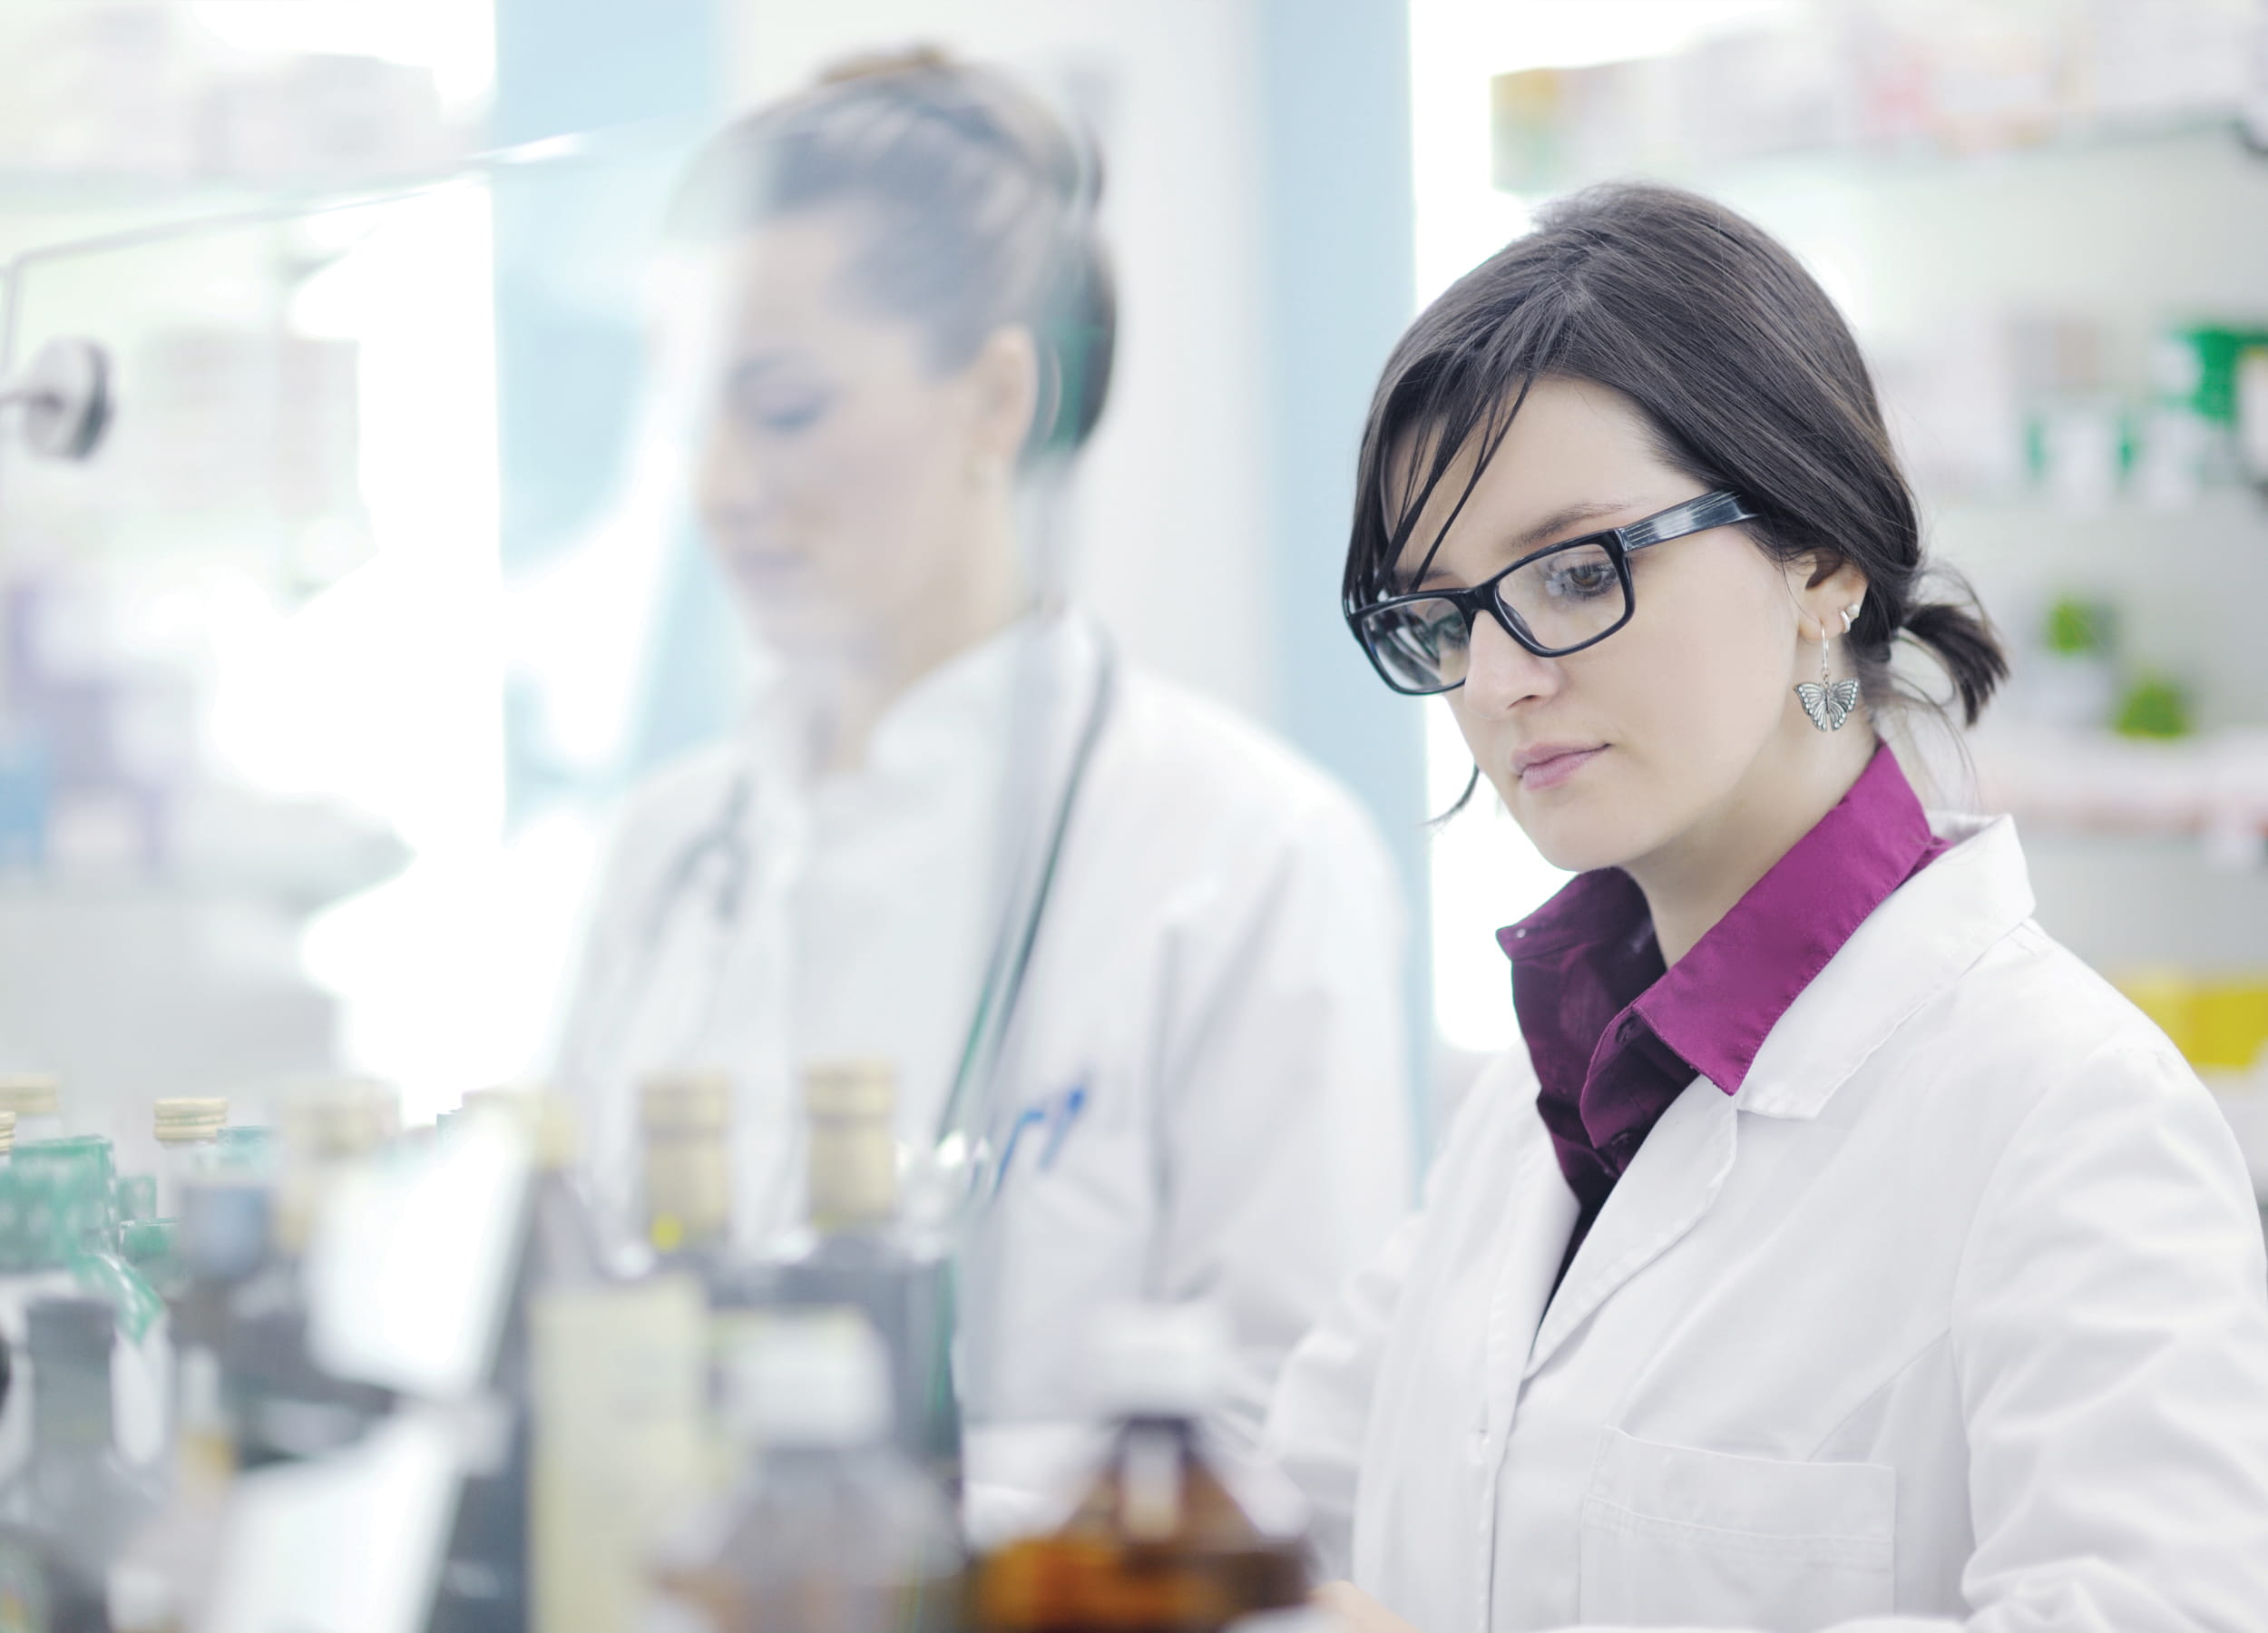 Retali Pharmacy assistant working in a lab